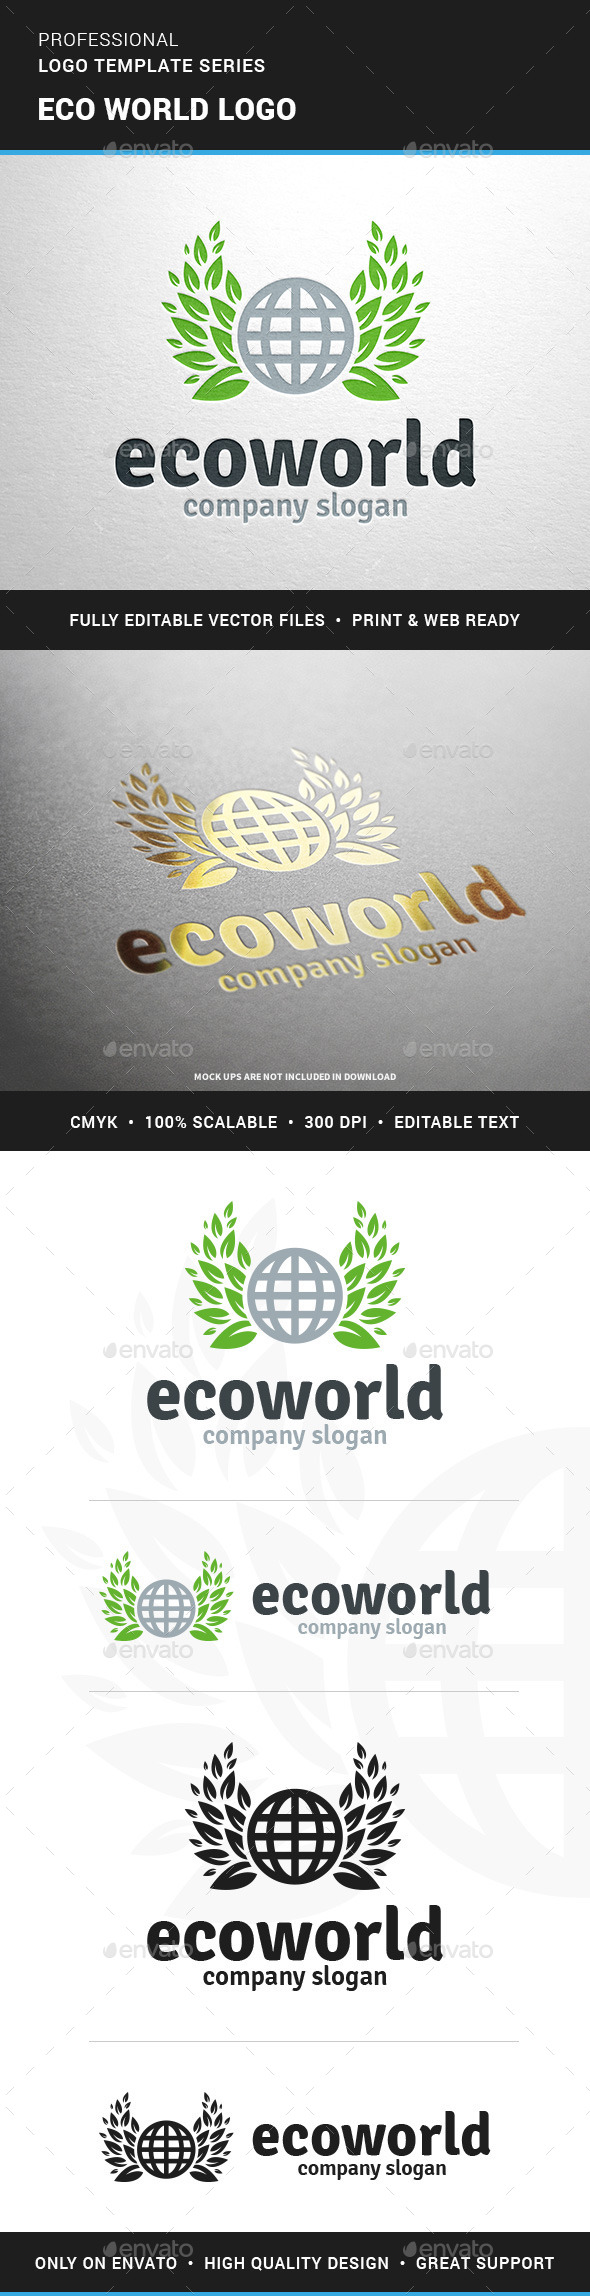 Eco World Logo Template